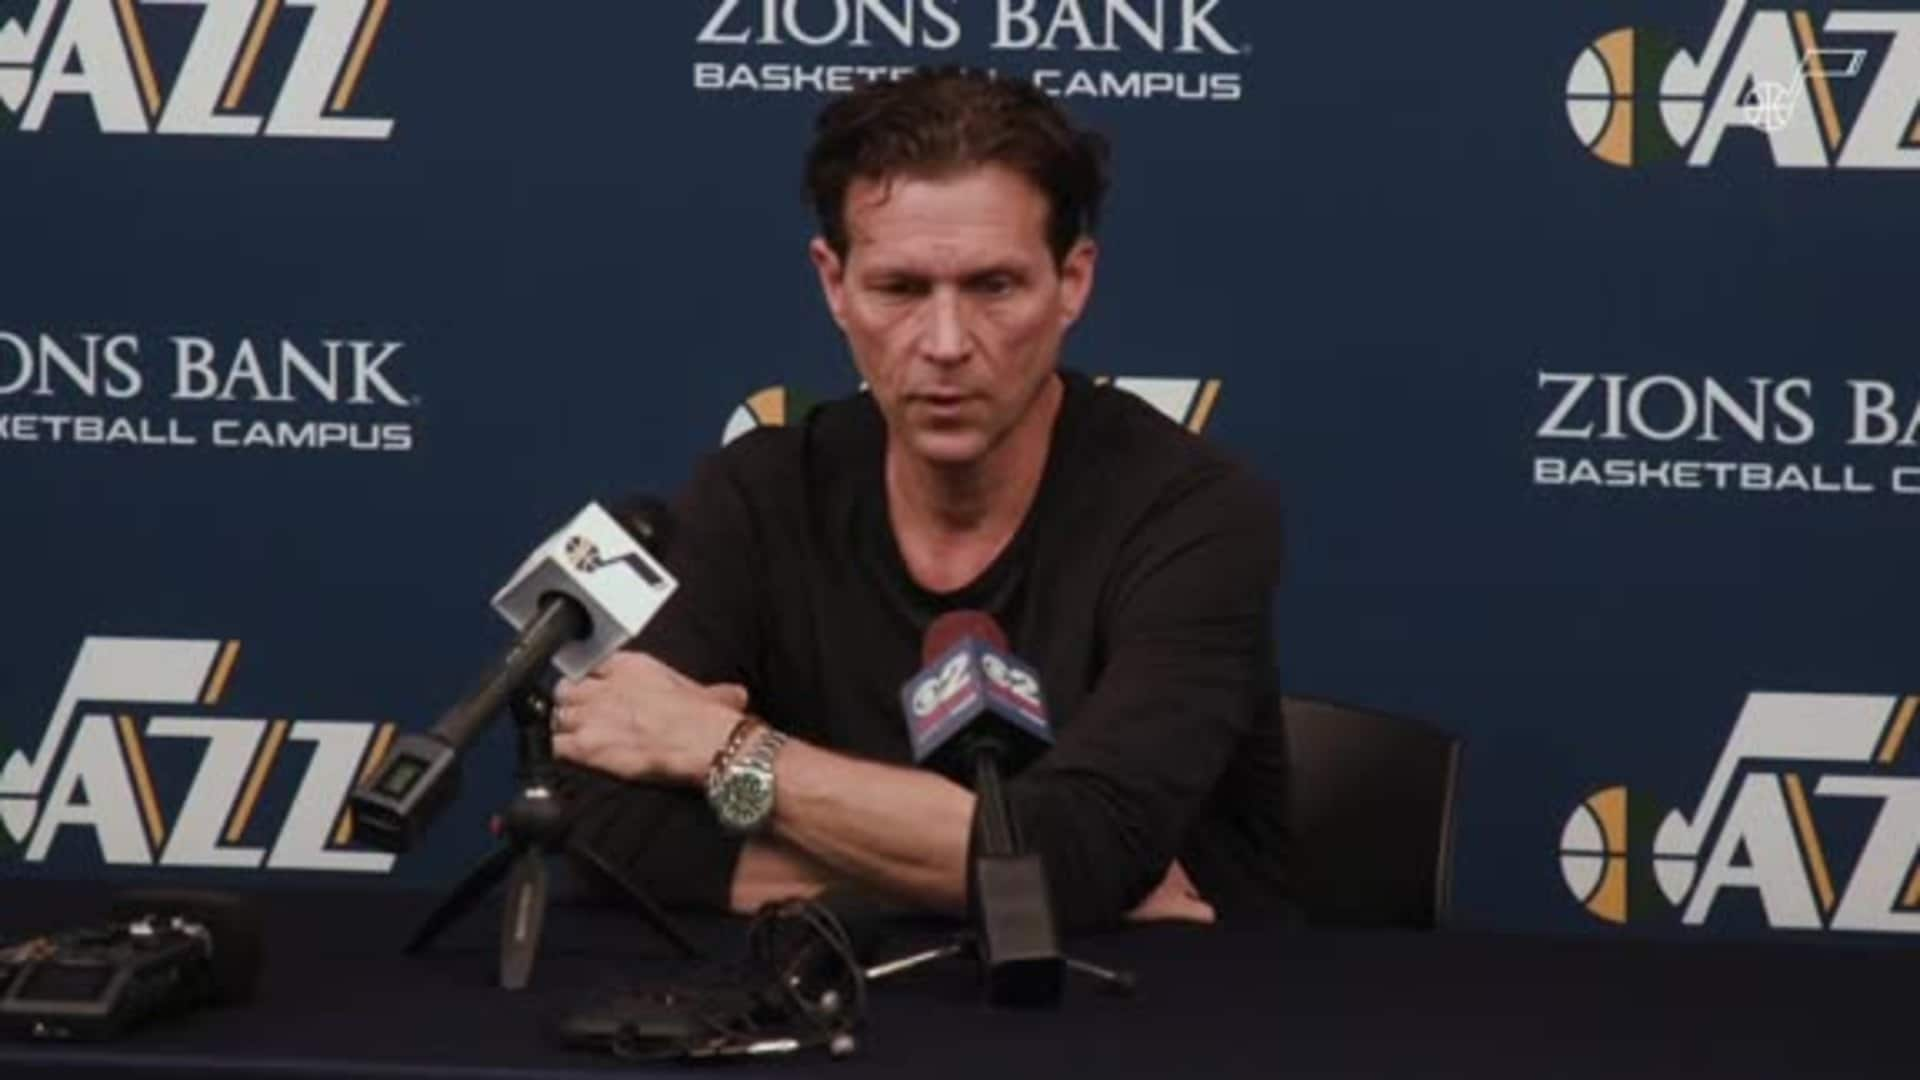 Shootaround Interviews, 3.9  — Coach Quin Snyder